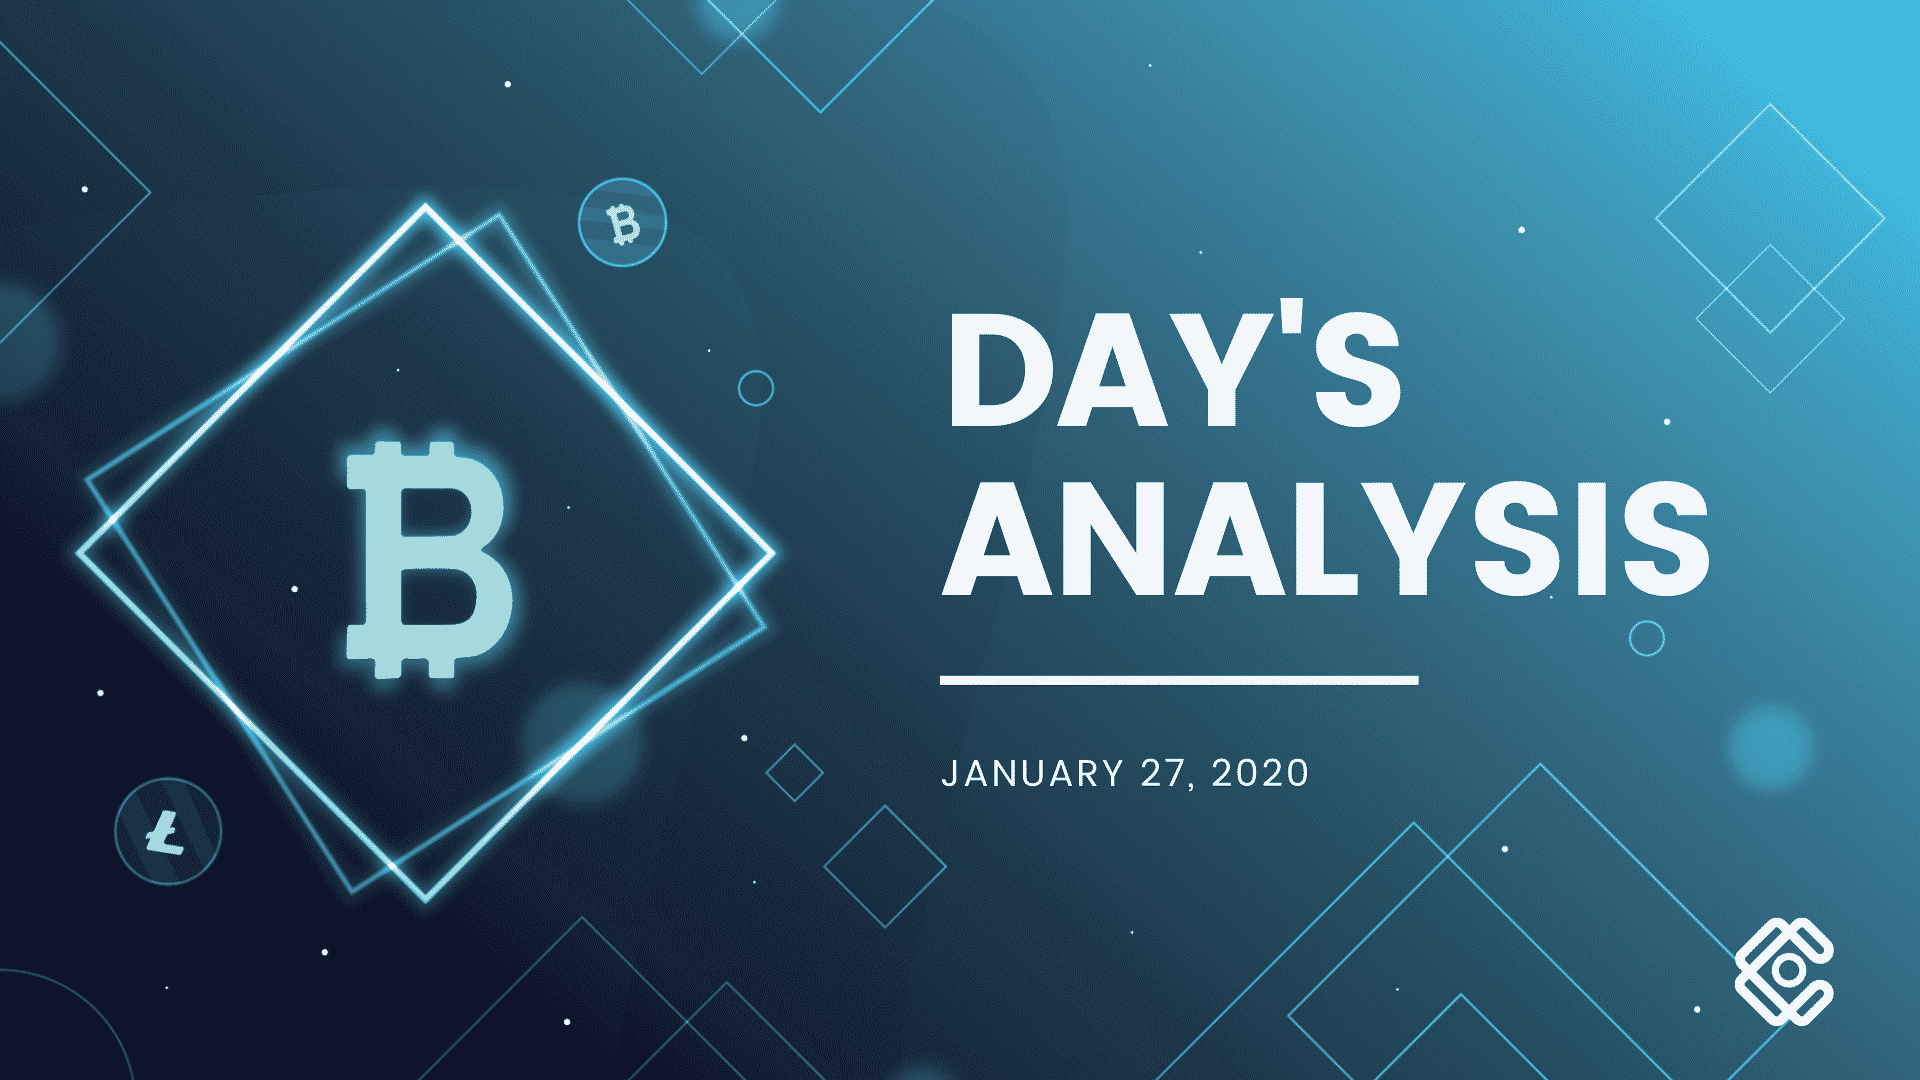 Market Analysis of January 27, 2020